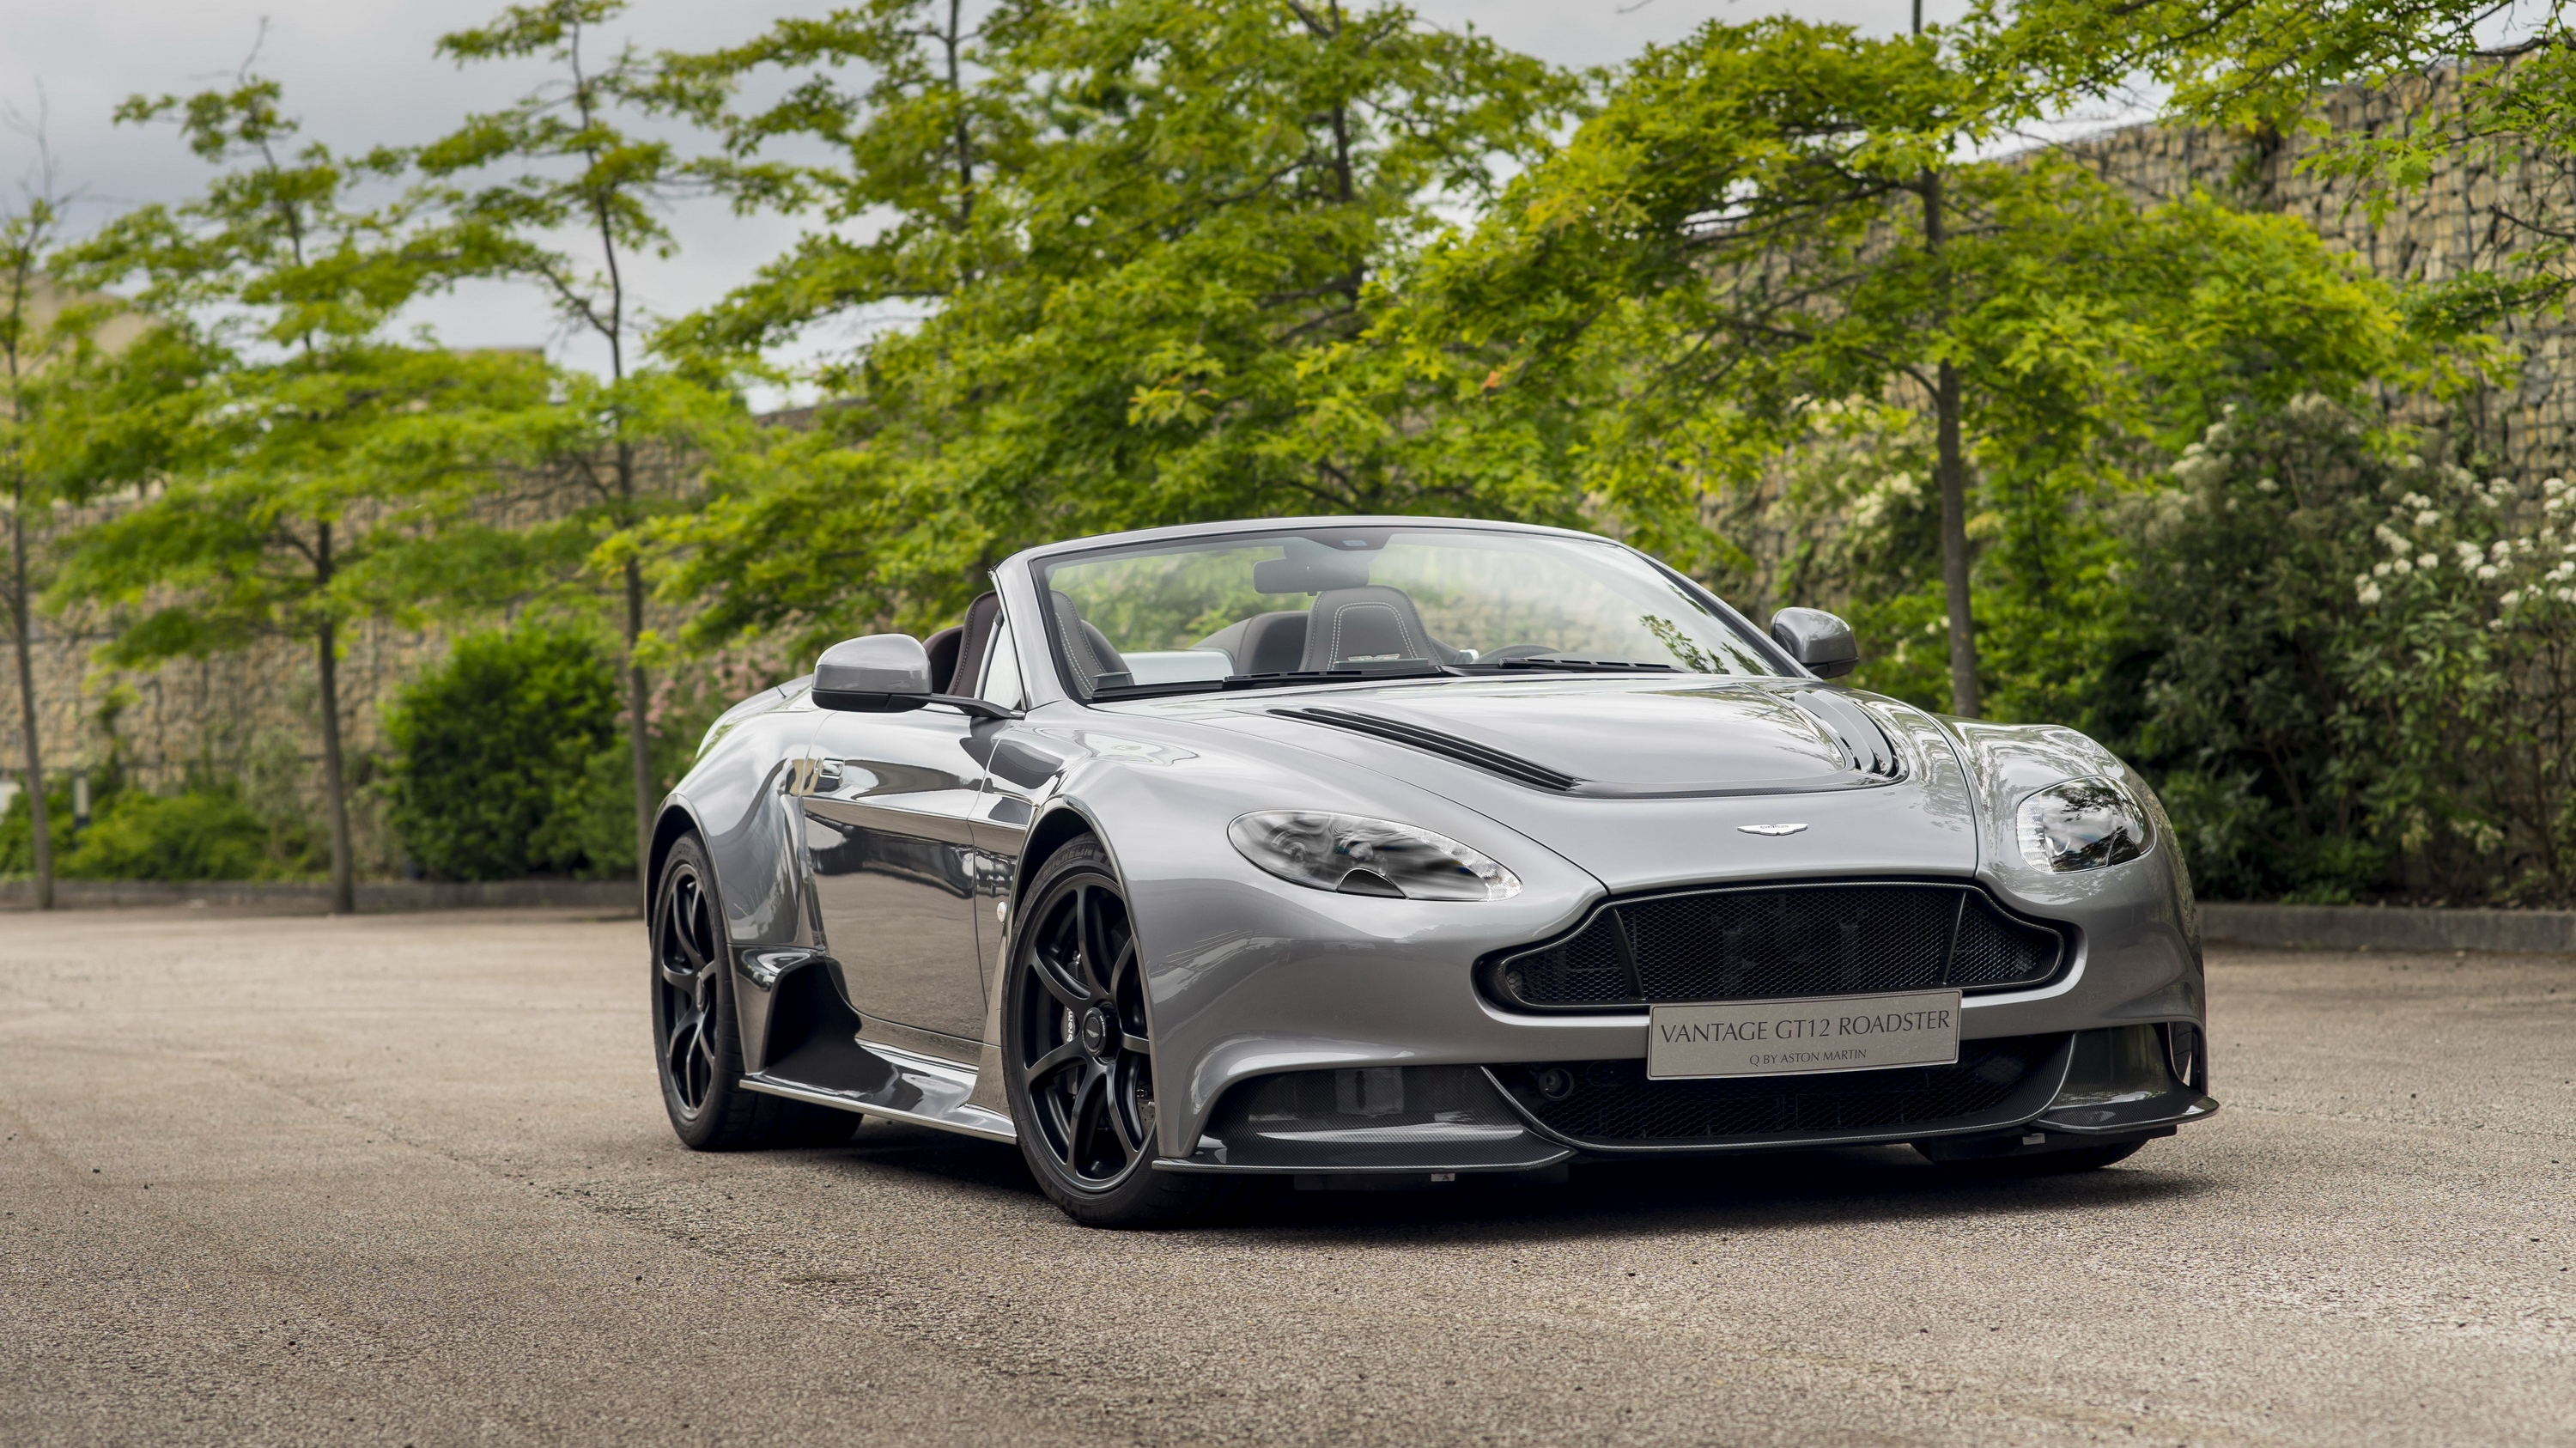 2016 aston martin vantage gt12 roadster review - top speed